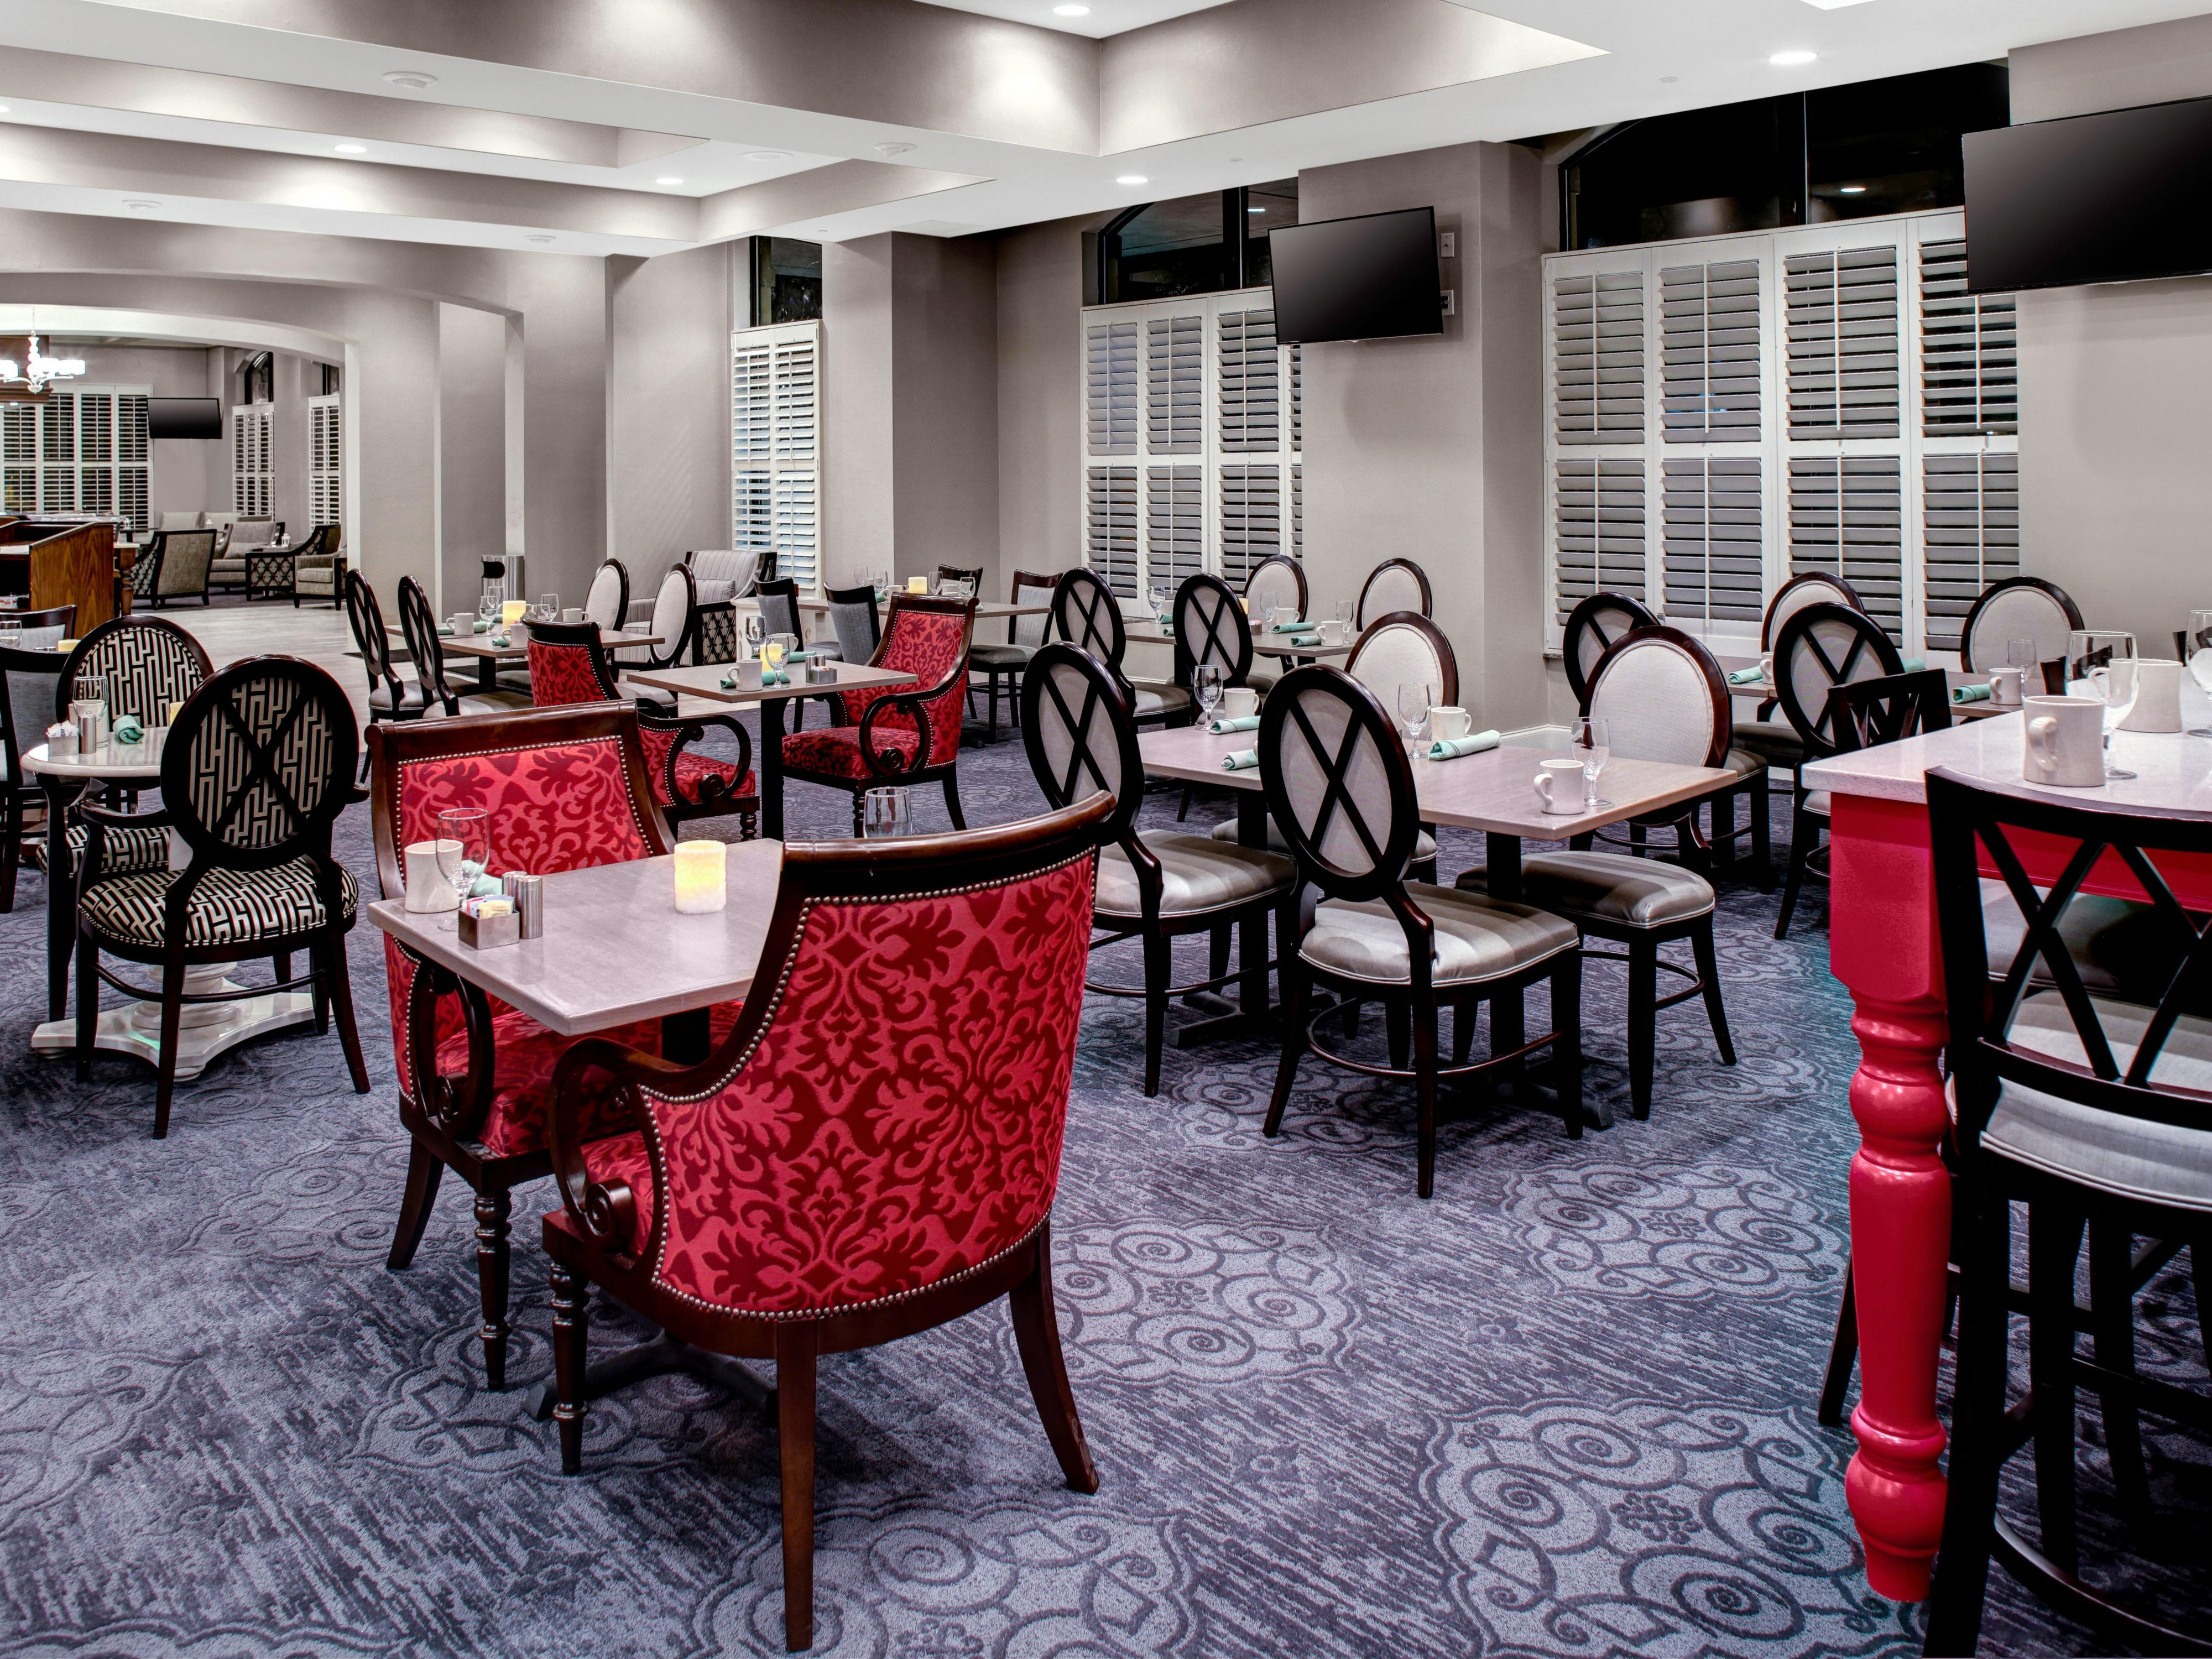 Enjoy a great meal at our on-site restaurant, The Meeting Room